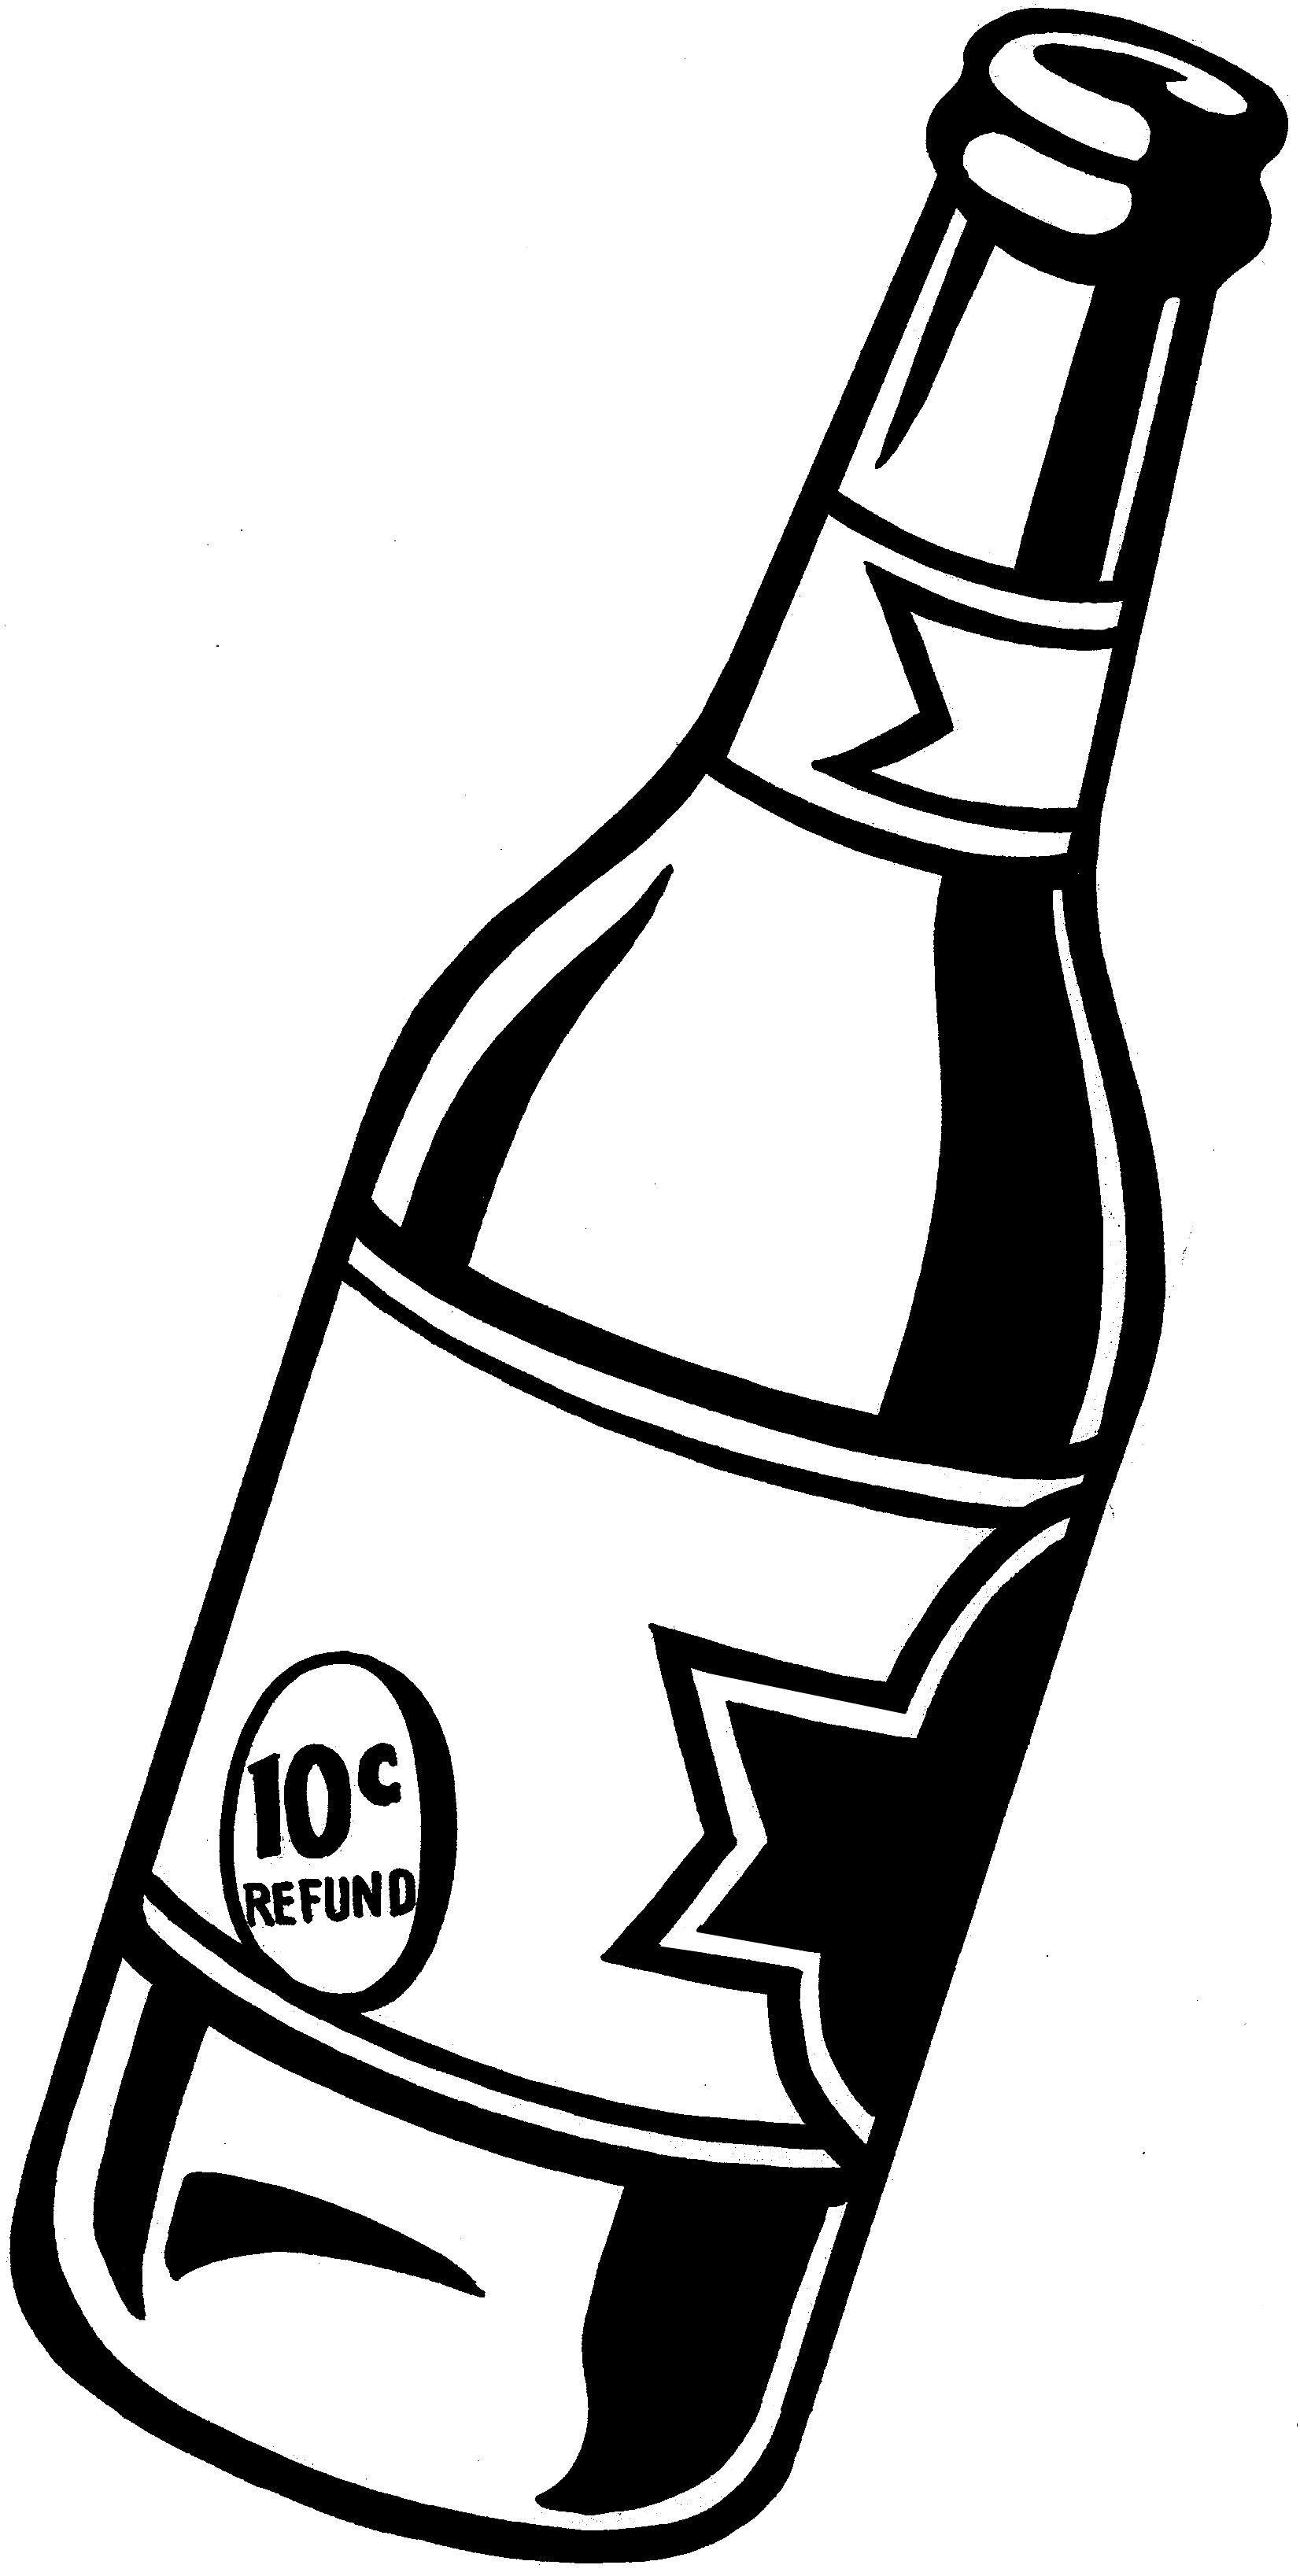 Beer Bottle Outline Clipart Beer Bottle -Beer Bottle Outline Clipart Beer Bottle Drawing Clipart-8